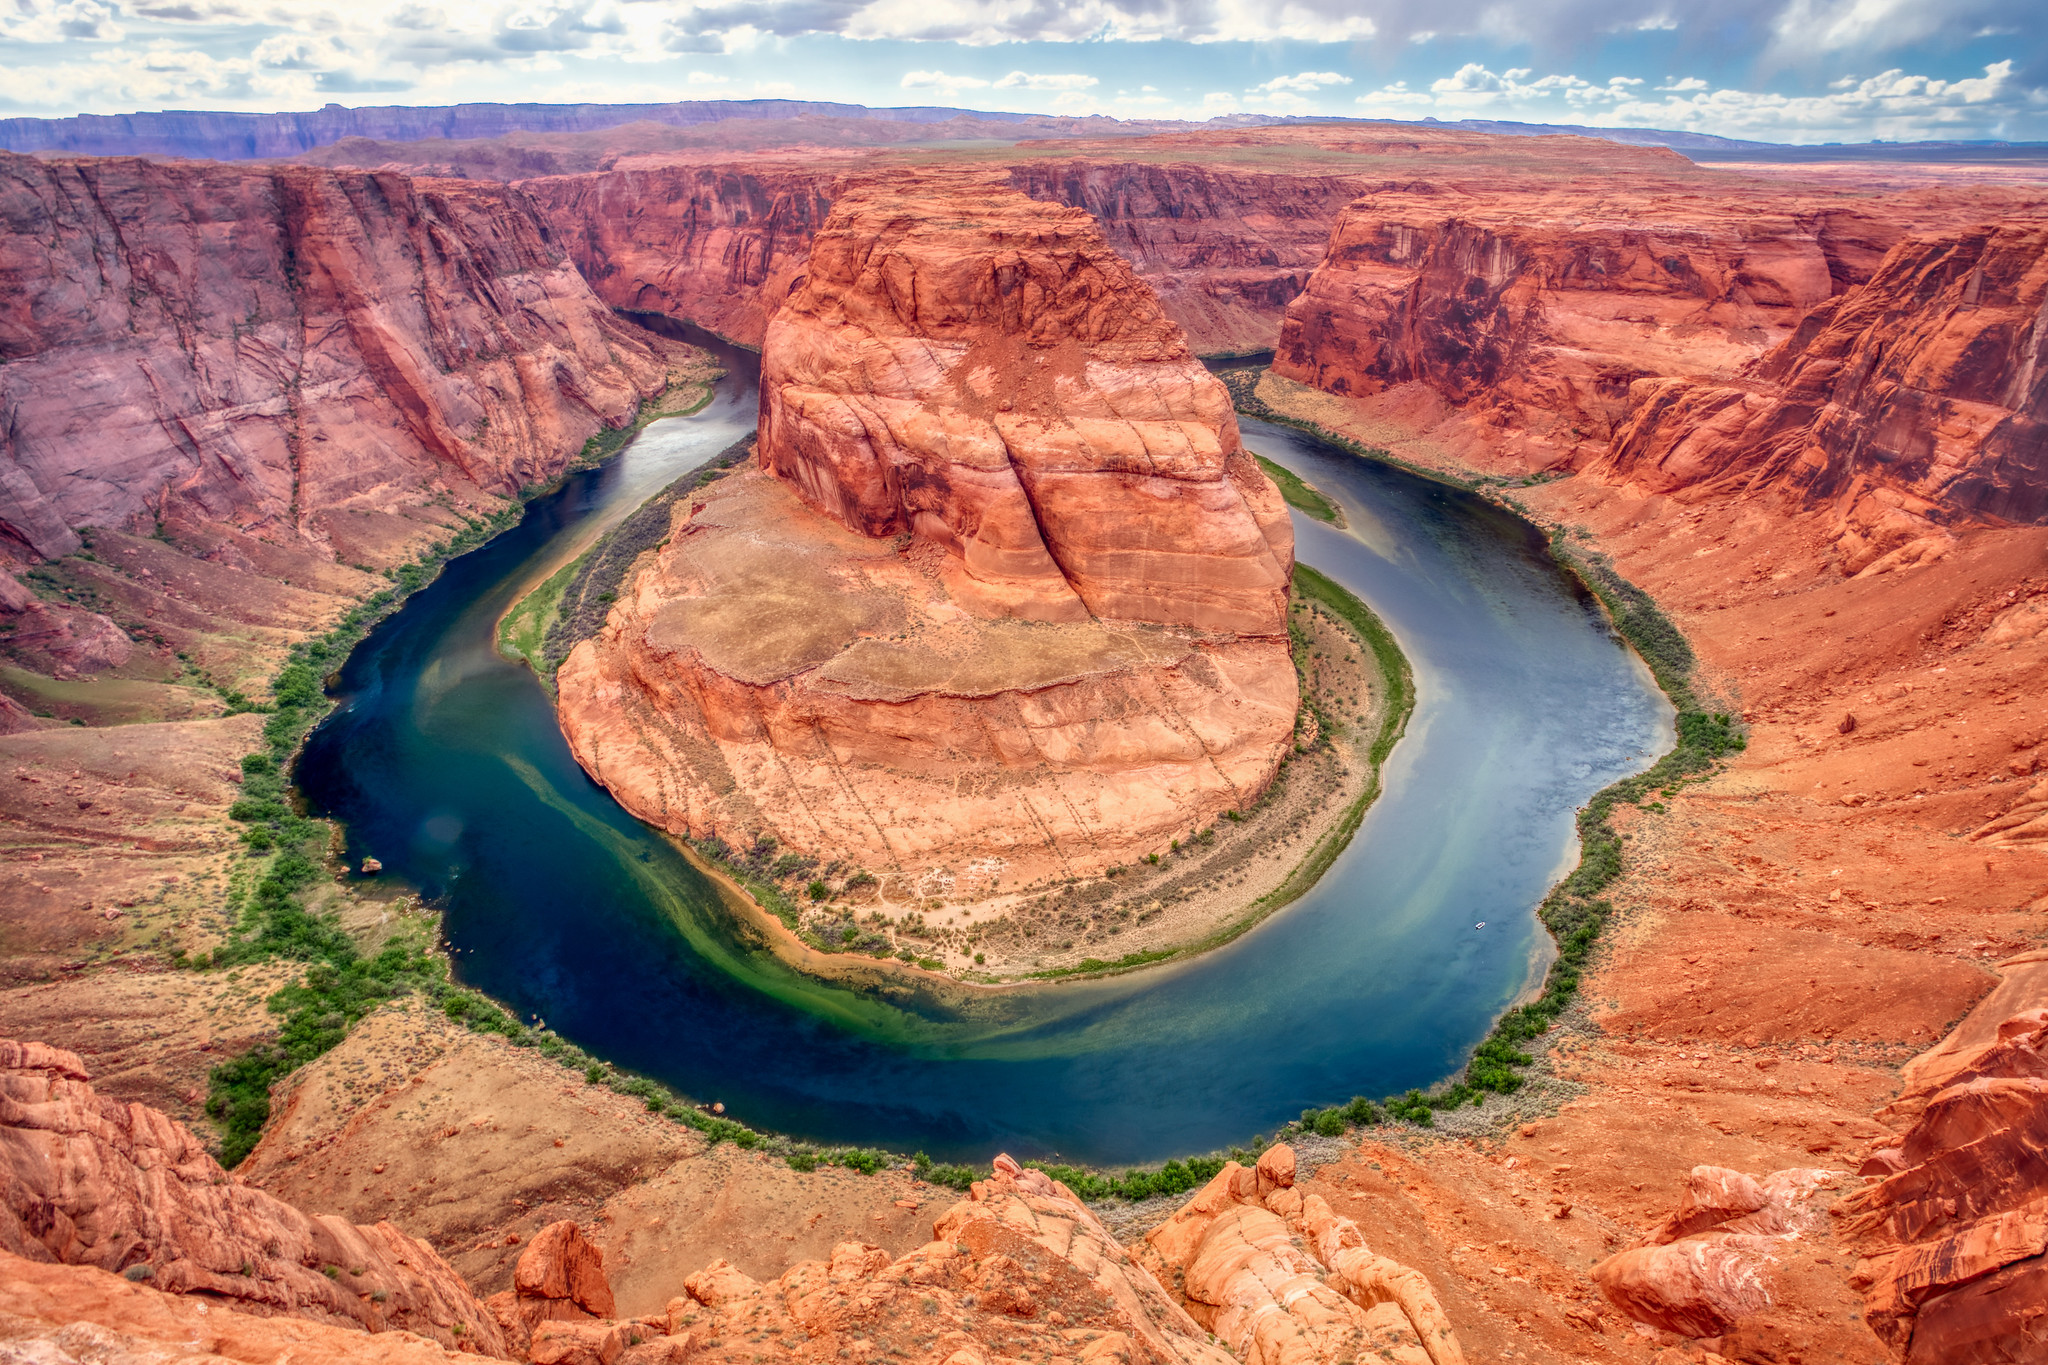 Horseshoe Bend & Beyond: Where to Take Photos in Page, AZ